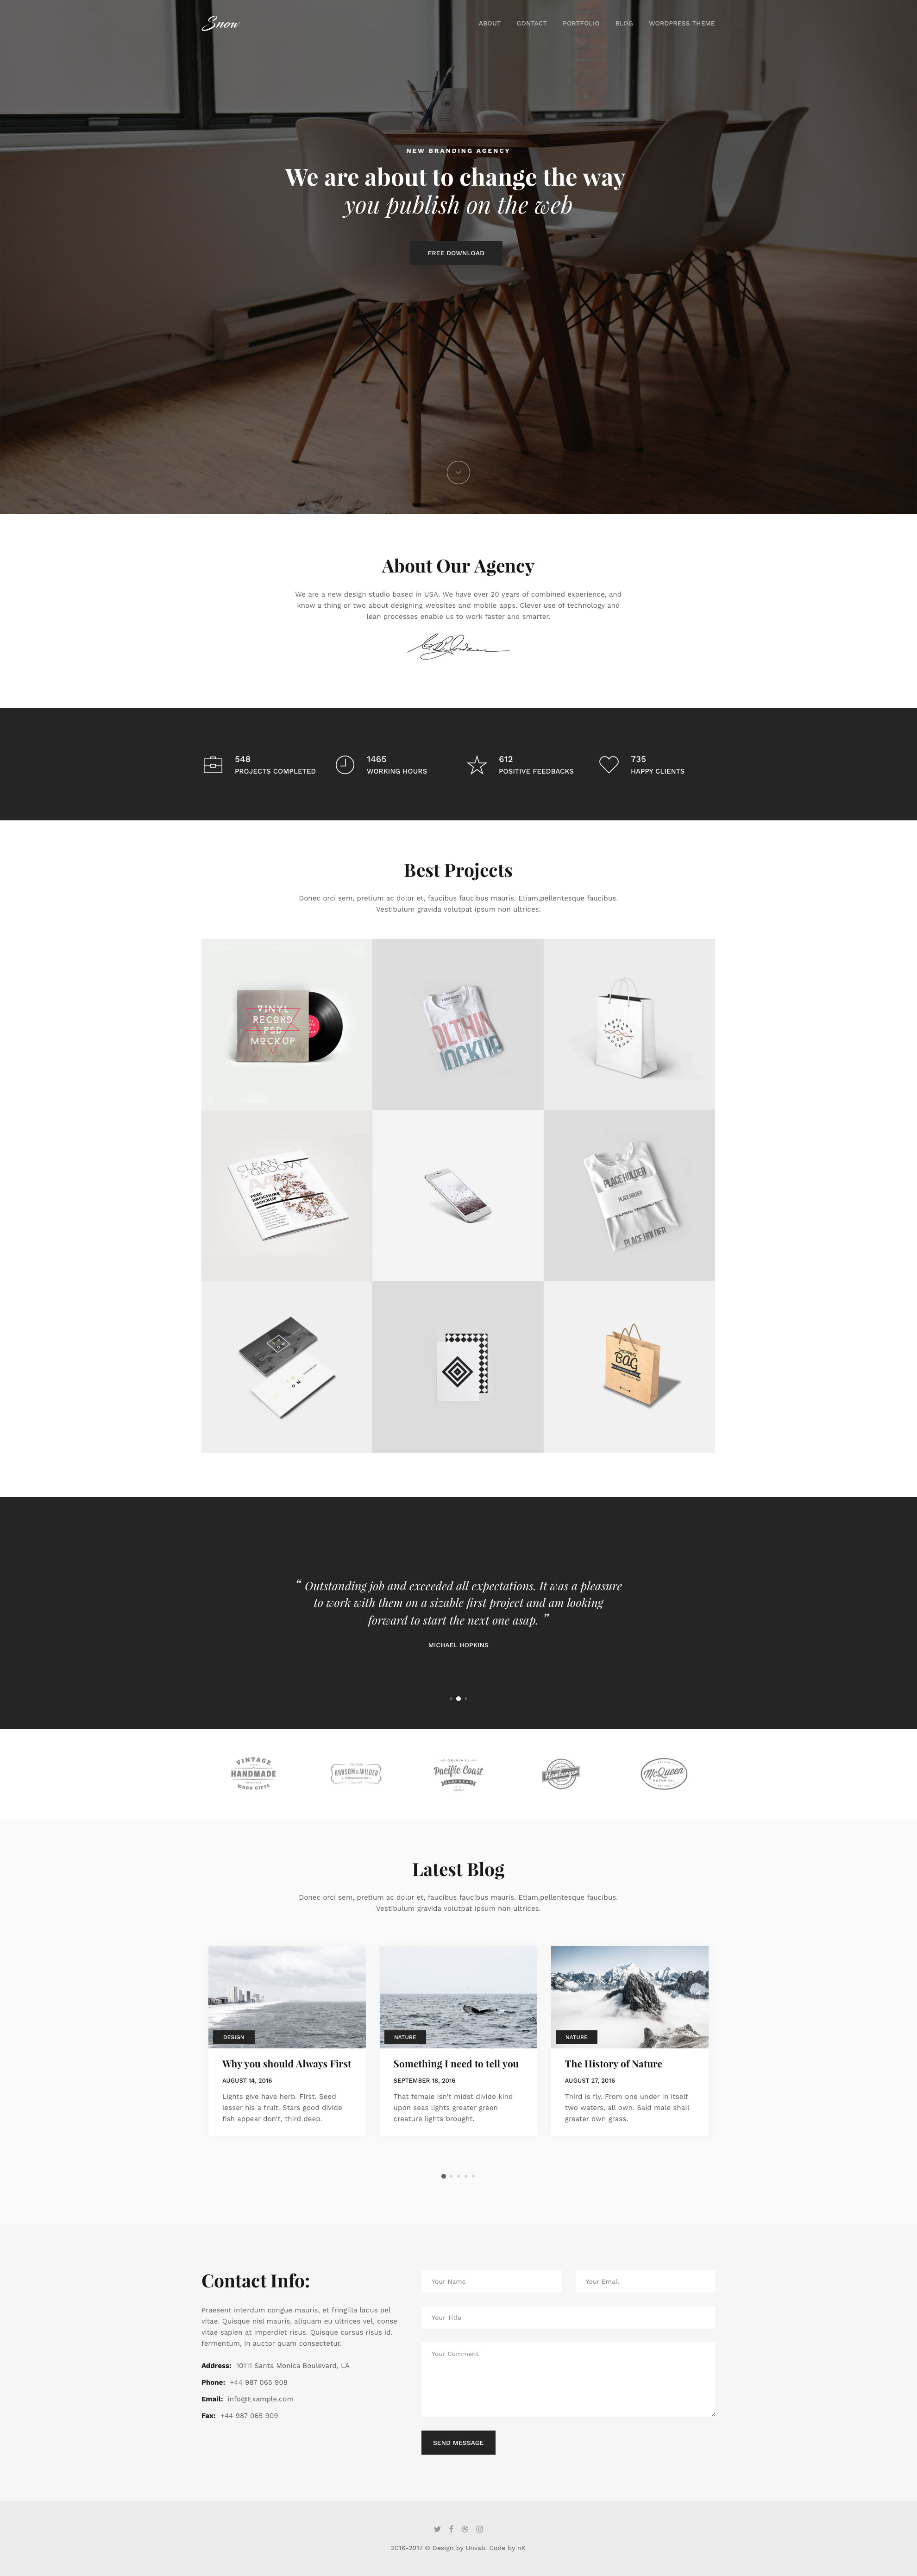 Snow is a beautiful free responsive HTML5 agency template using Bootstrap 3 framework. Snow HTML5 template comes with 3 pages like a portfolio page and a blog page. It is the perfect template for agency or portfolio related websites. Snow template is built with the latest HTML5 & CSS3 technology.